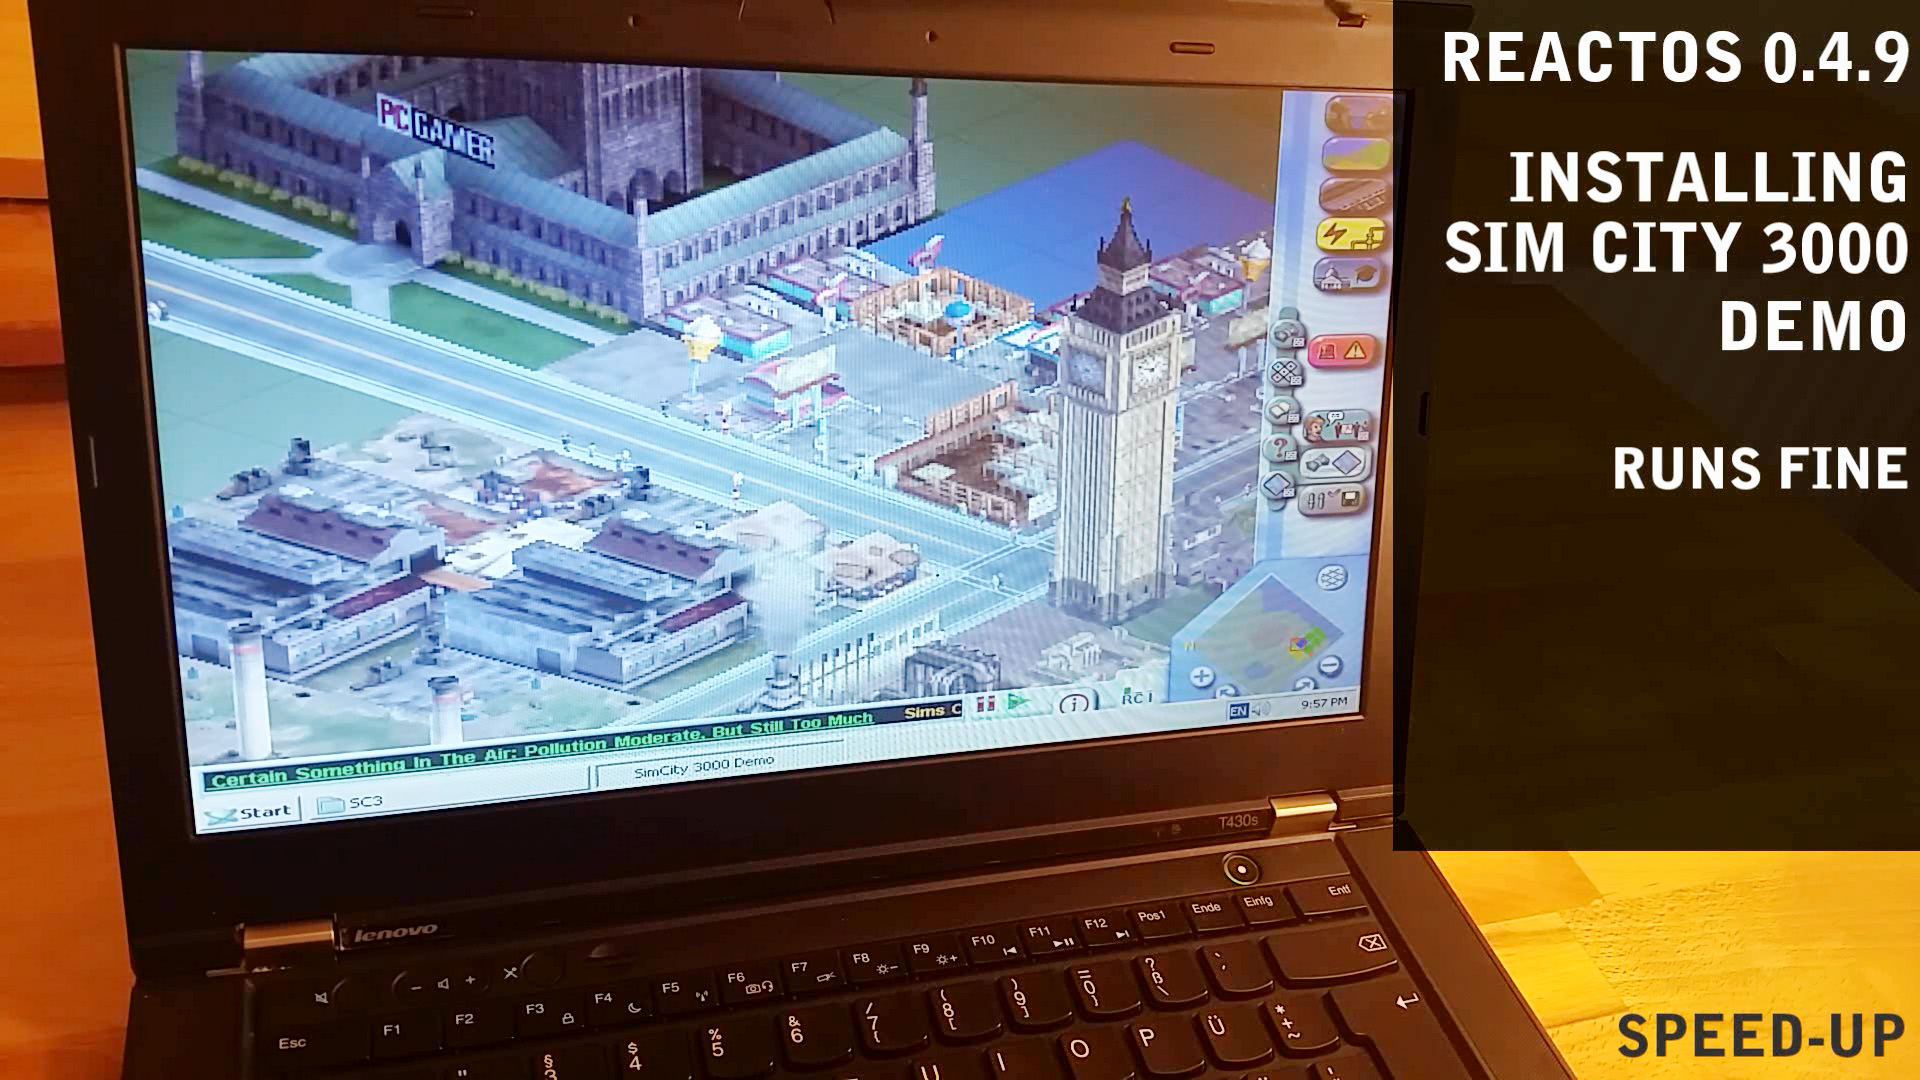 ReactOS tested on real hardware ThinkPad T430s – PANORAMA CIRCLE